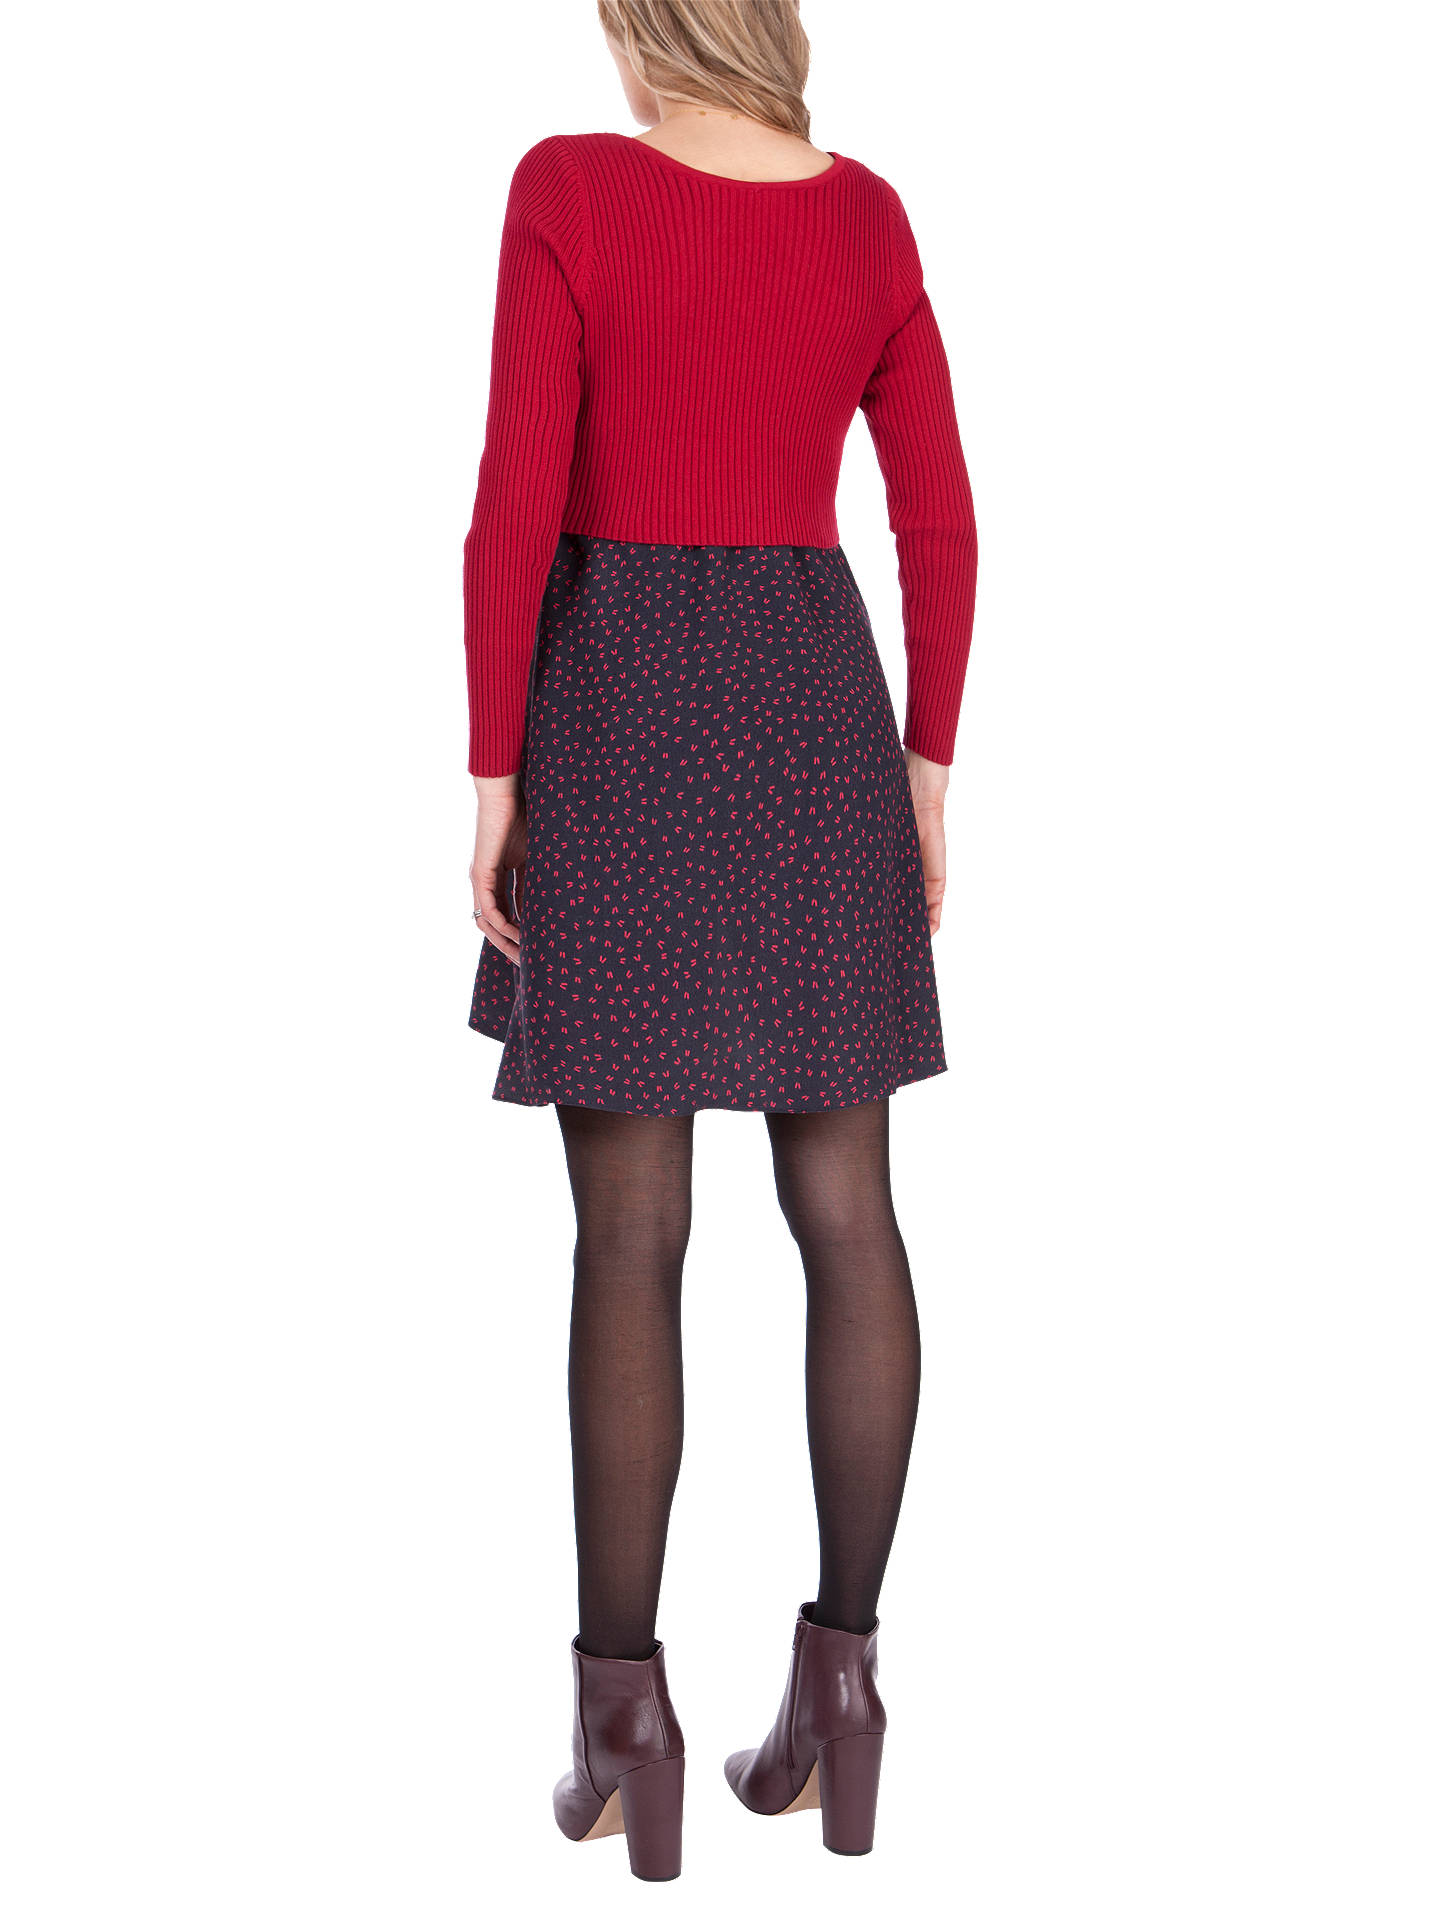 BuySéraphine Madeline Two Piece Maternity Nursing Dress, Red/Black, 8 Online at johnlewis.com